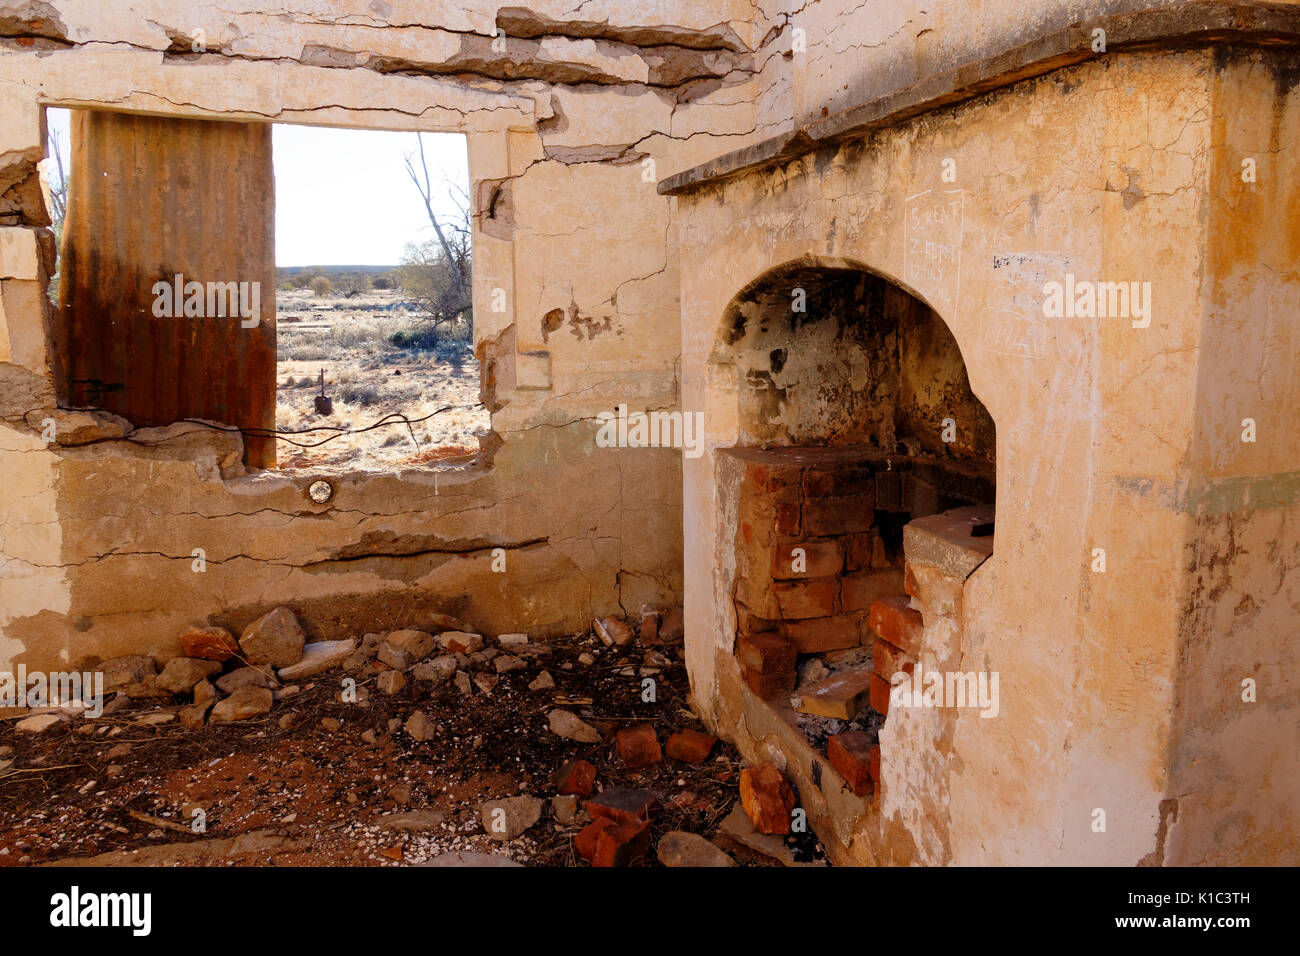 fireplace remains stock photos u0026 fireplace remains stock images